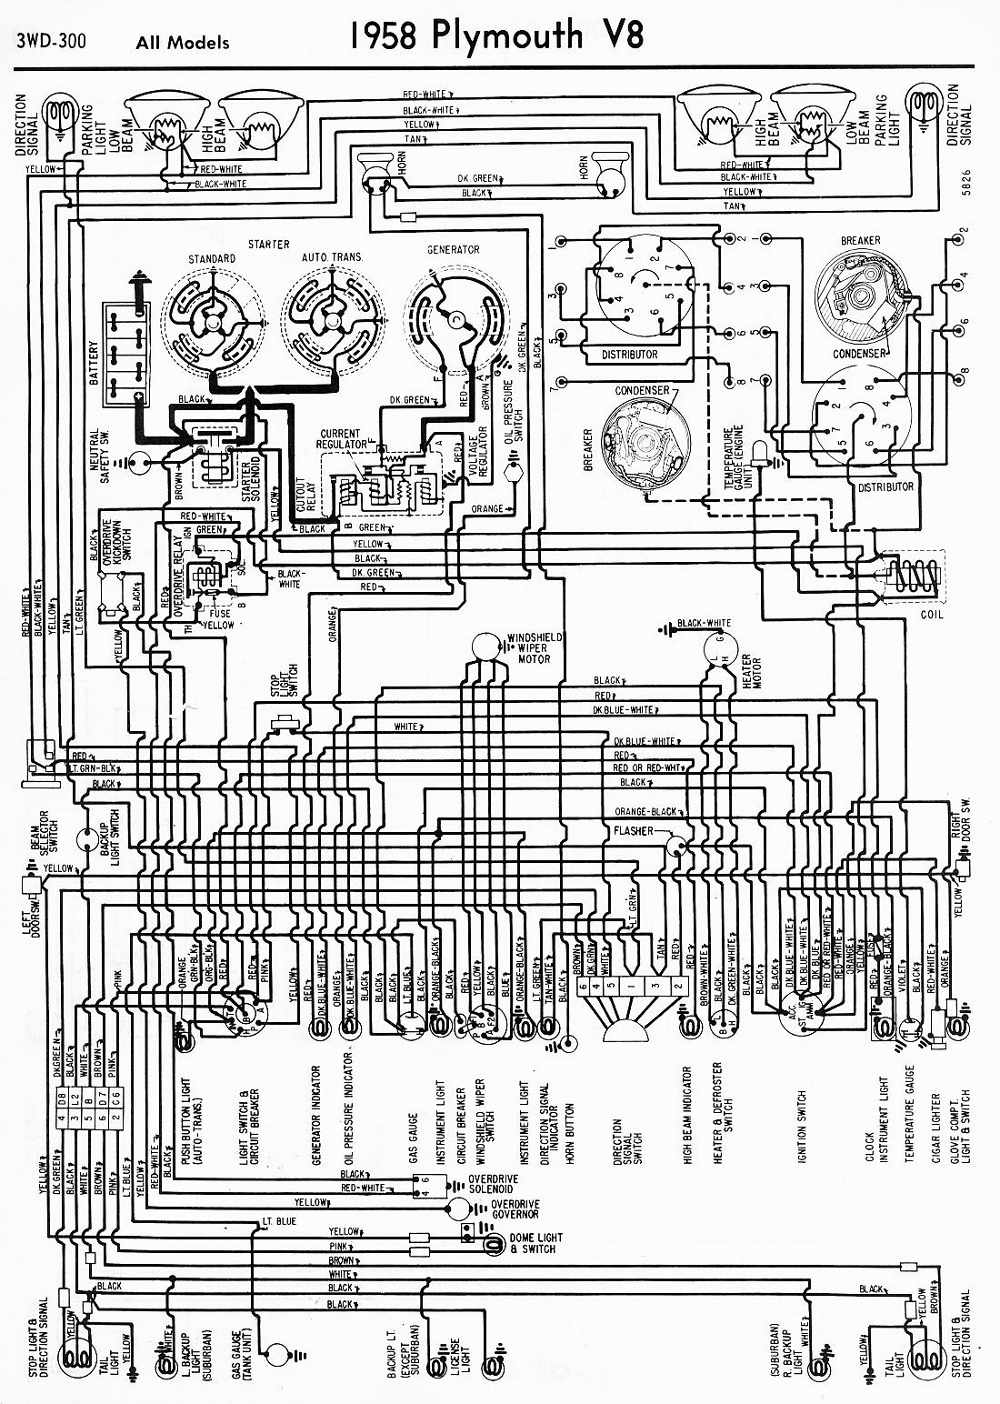 Colorful 1937 Ford Wiring Diagram Image Everything You Need to Know About Wiring  Diagram